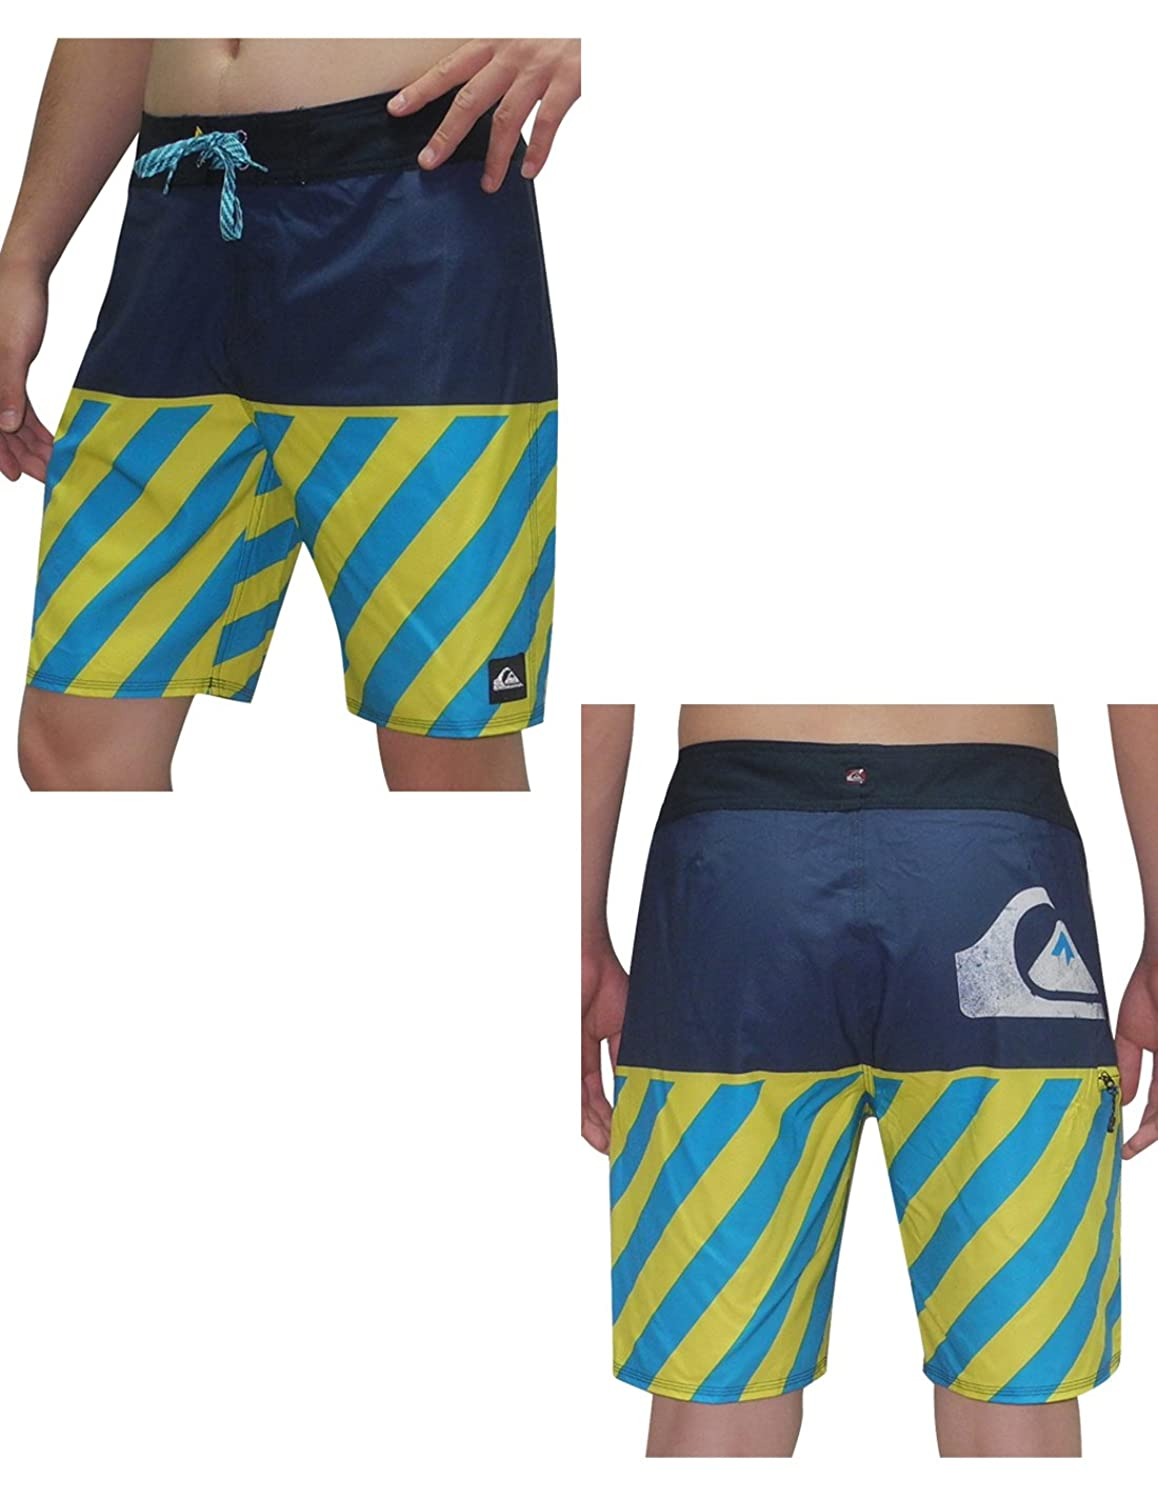 best Quiksilver Young Guns Mens Skate & Surf Boardshorts